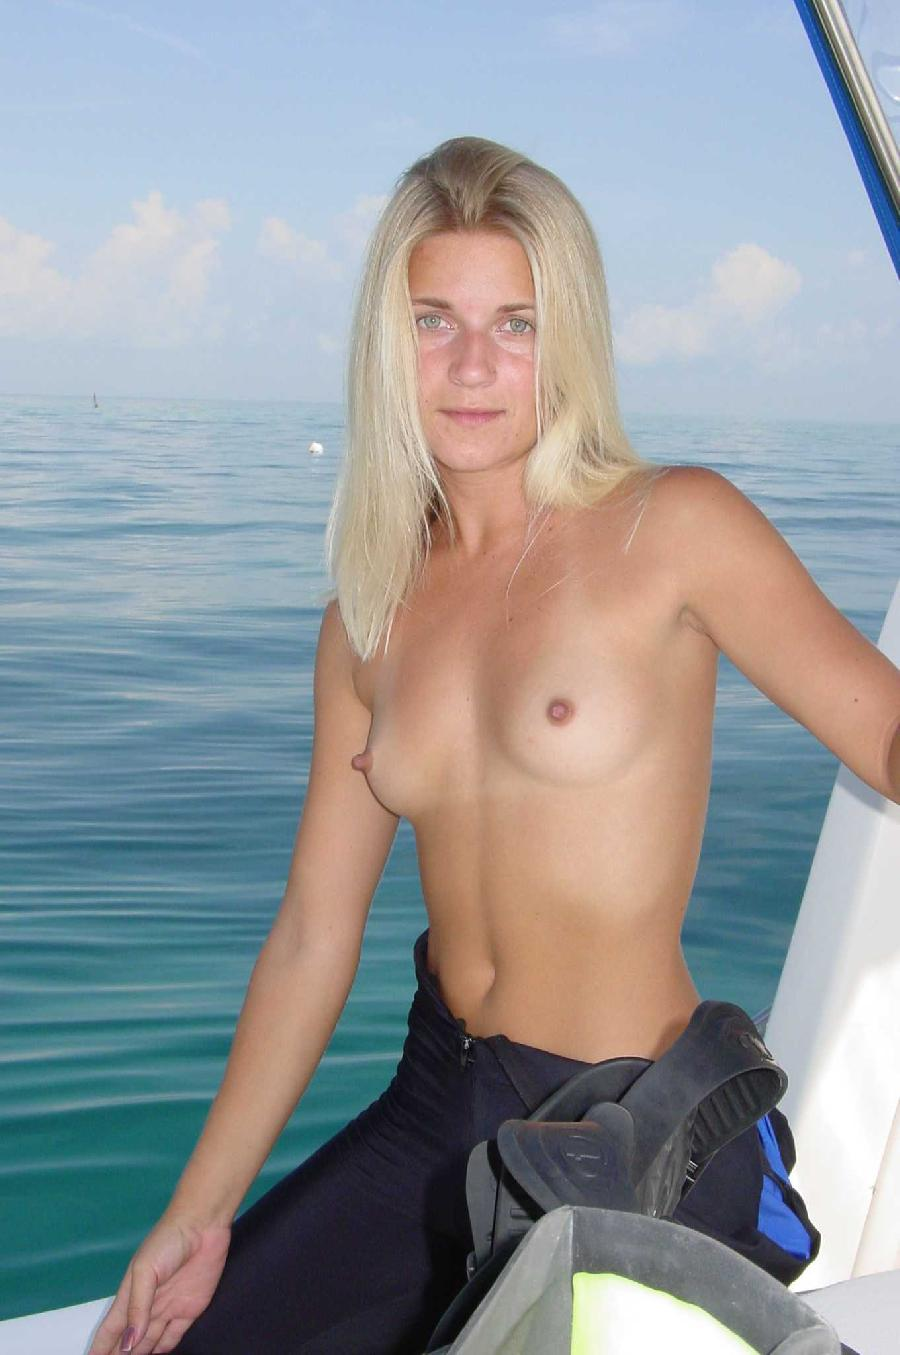 Opinion Nude blondes on boats apologise